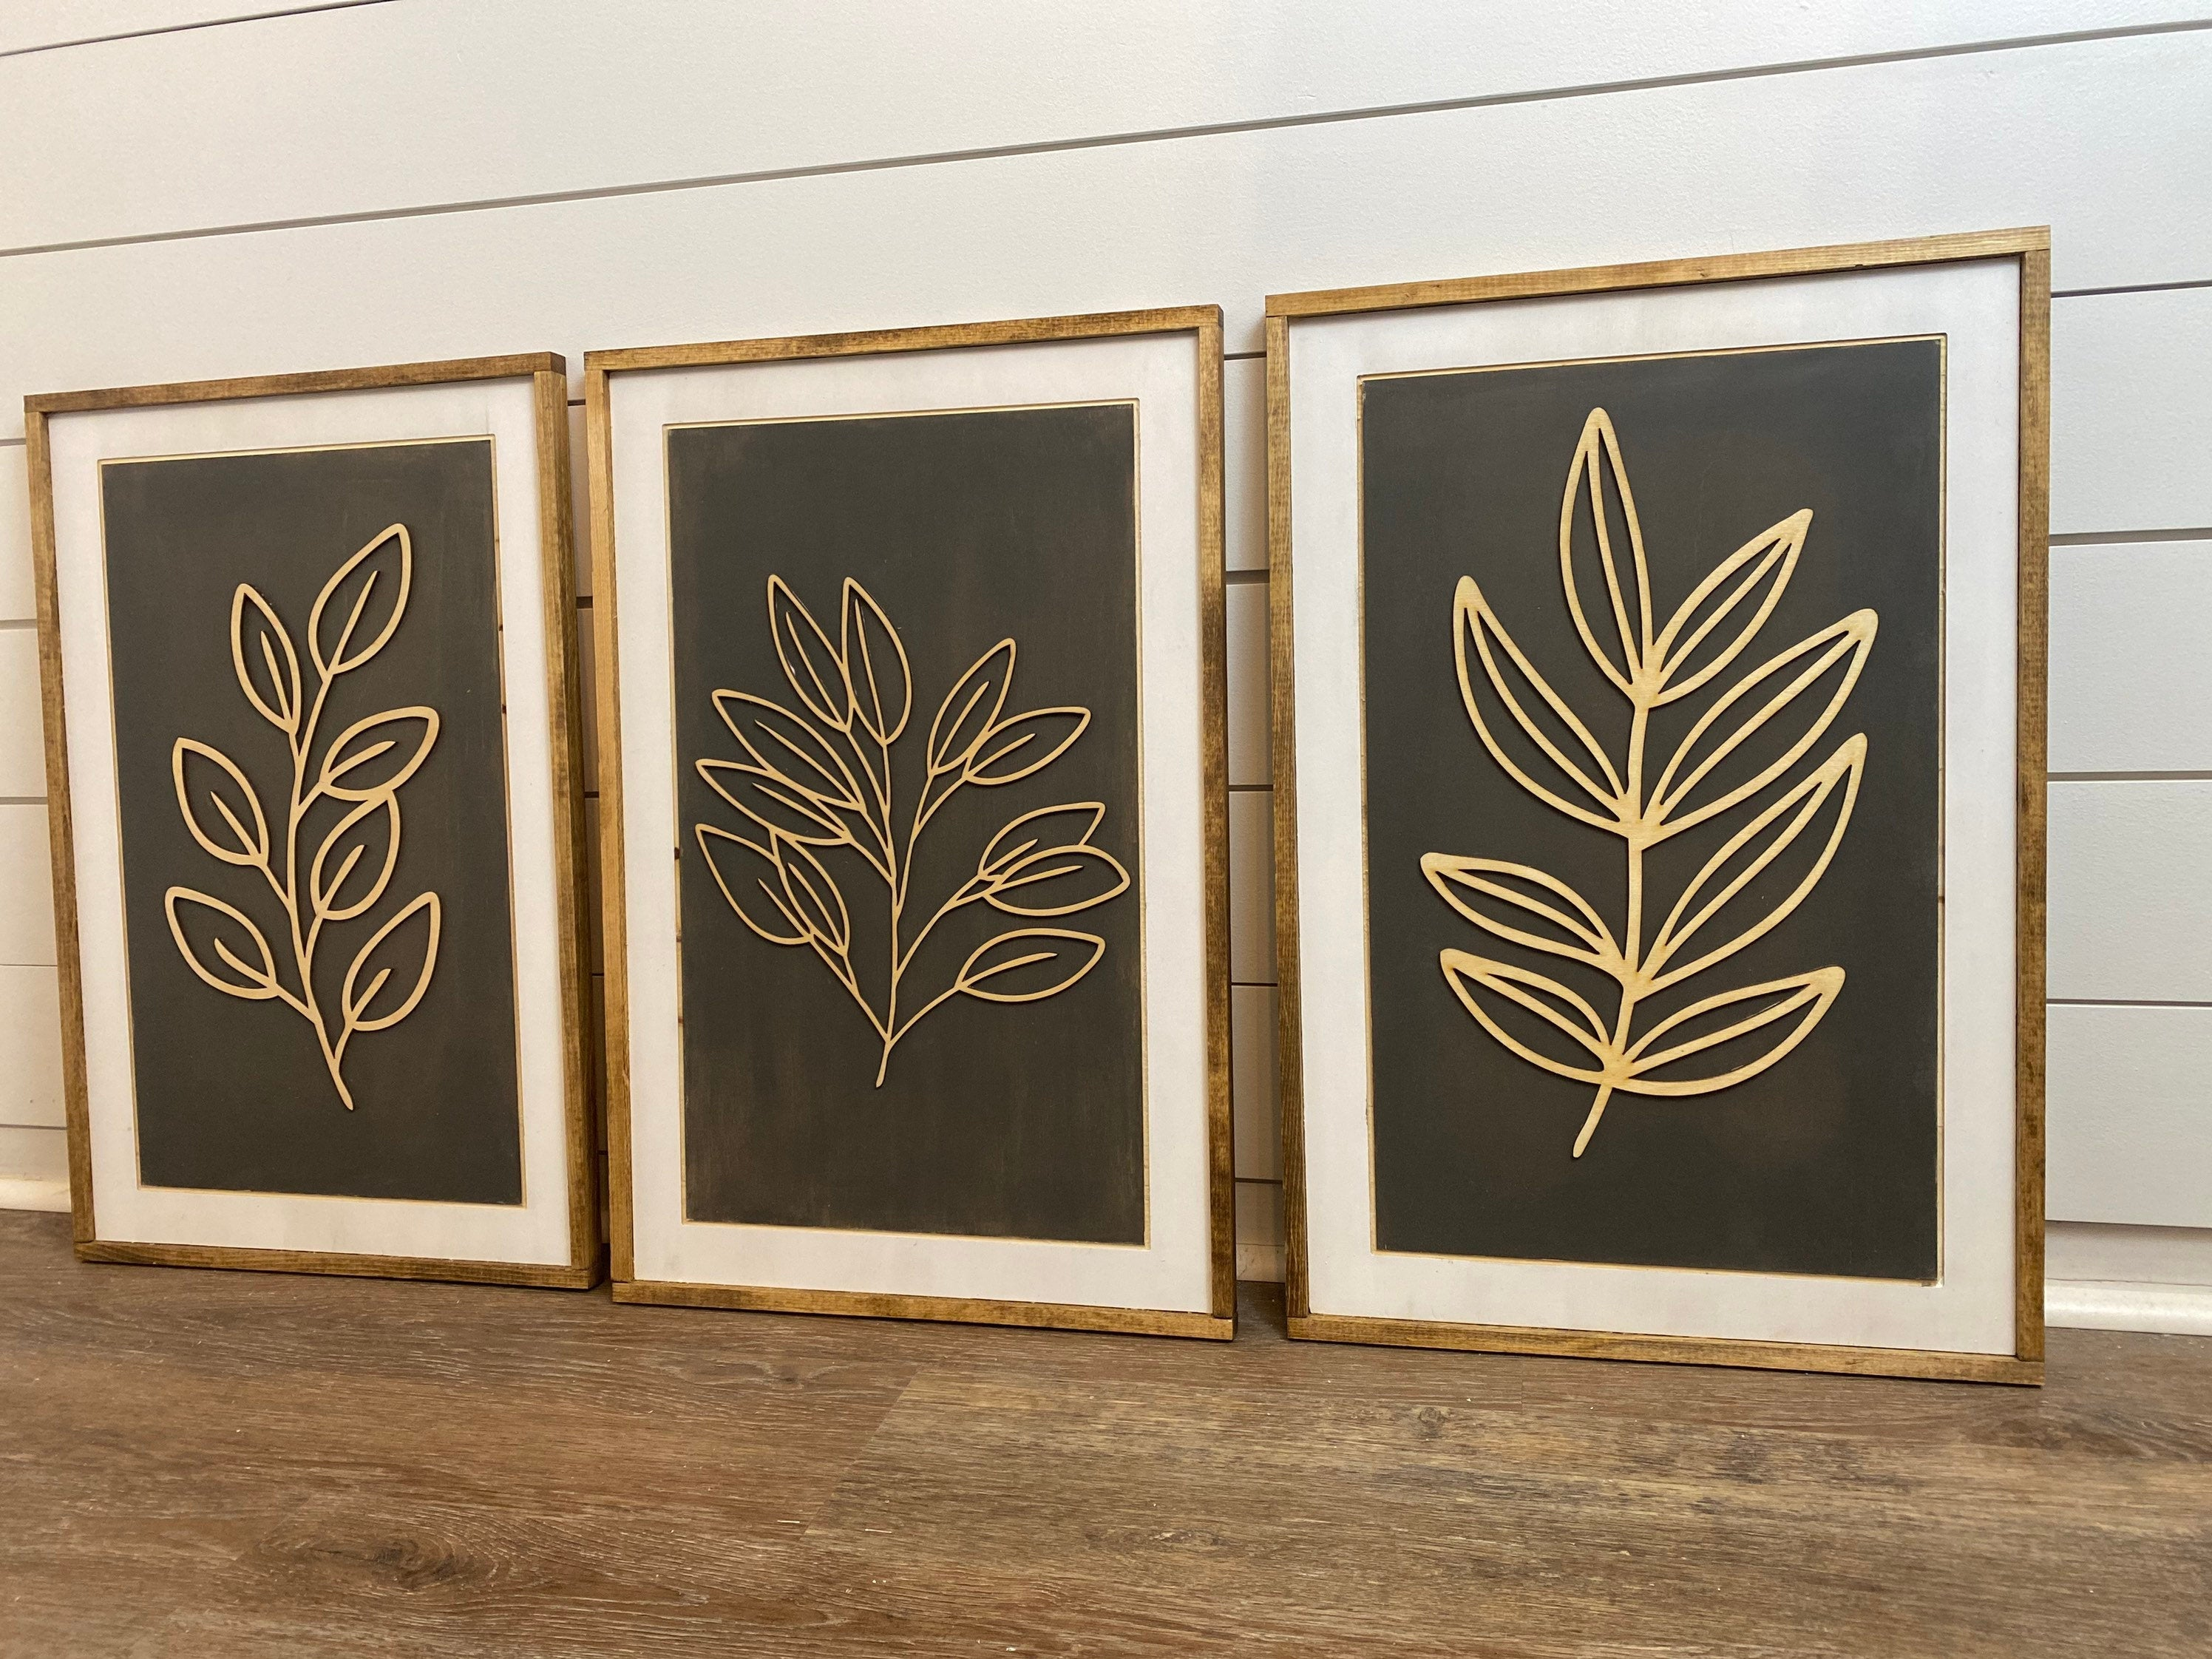 Set of 3 Wooden Leaf Wall Art , 24""